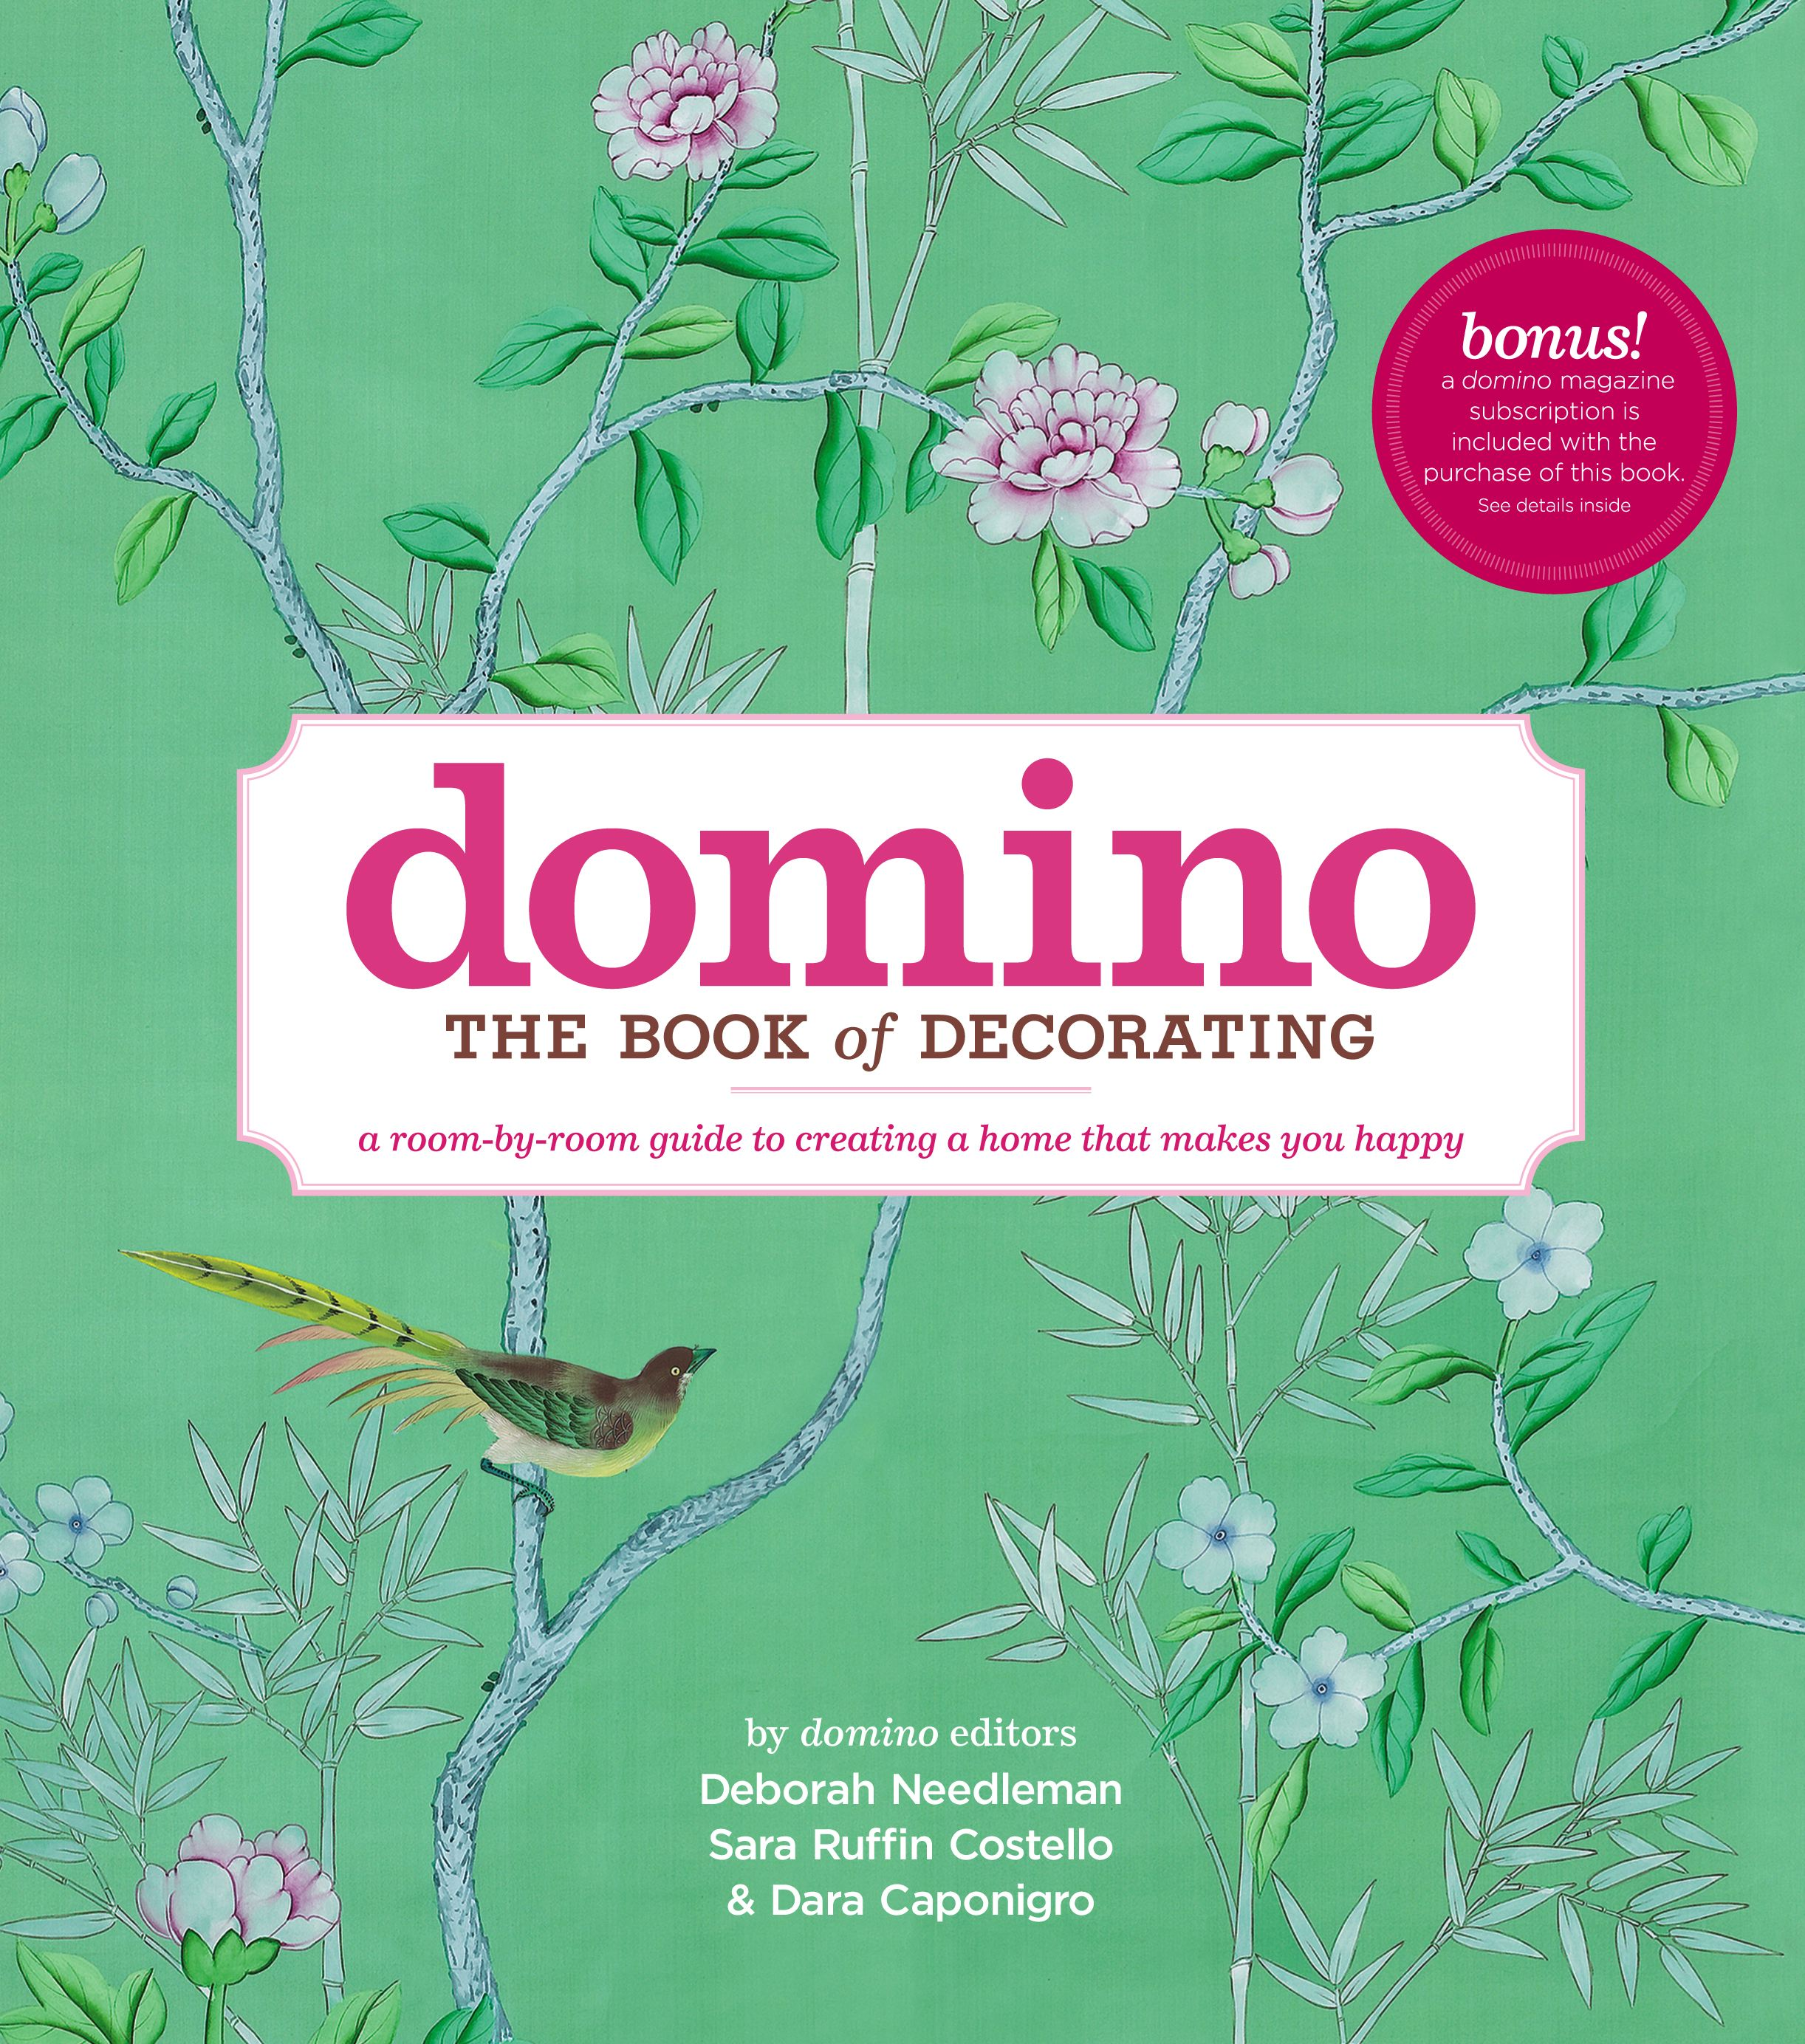 Domino the book of decorating 9781439109939 hr